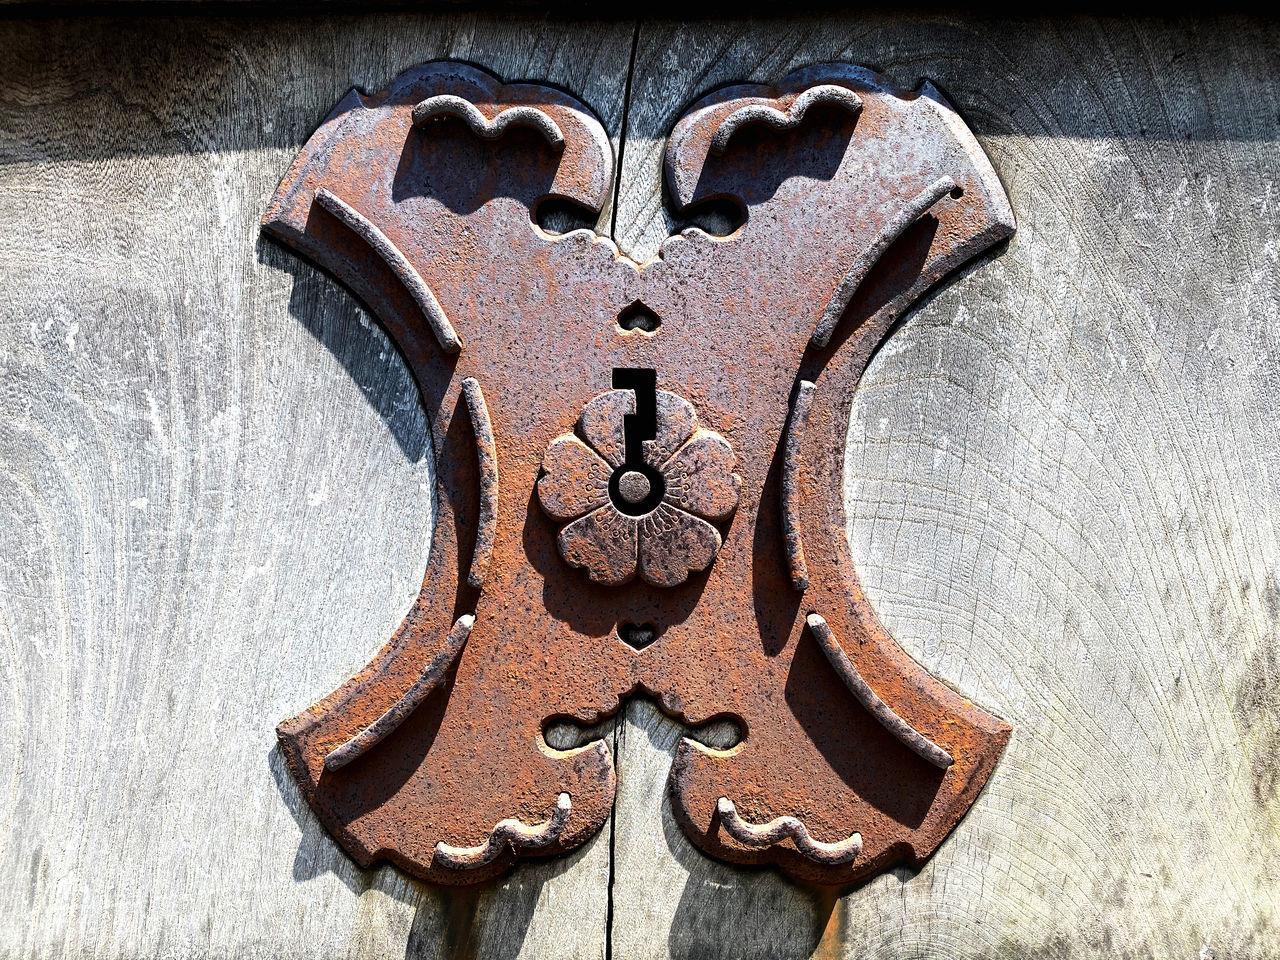 CLOSE-UP OF OLD RUSTY METAL ON WOOD